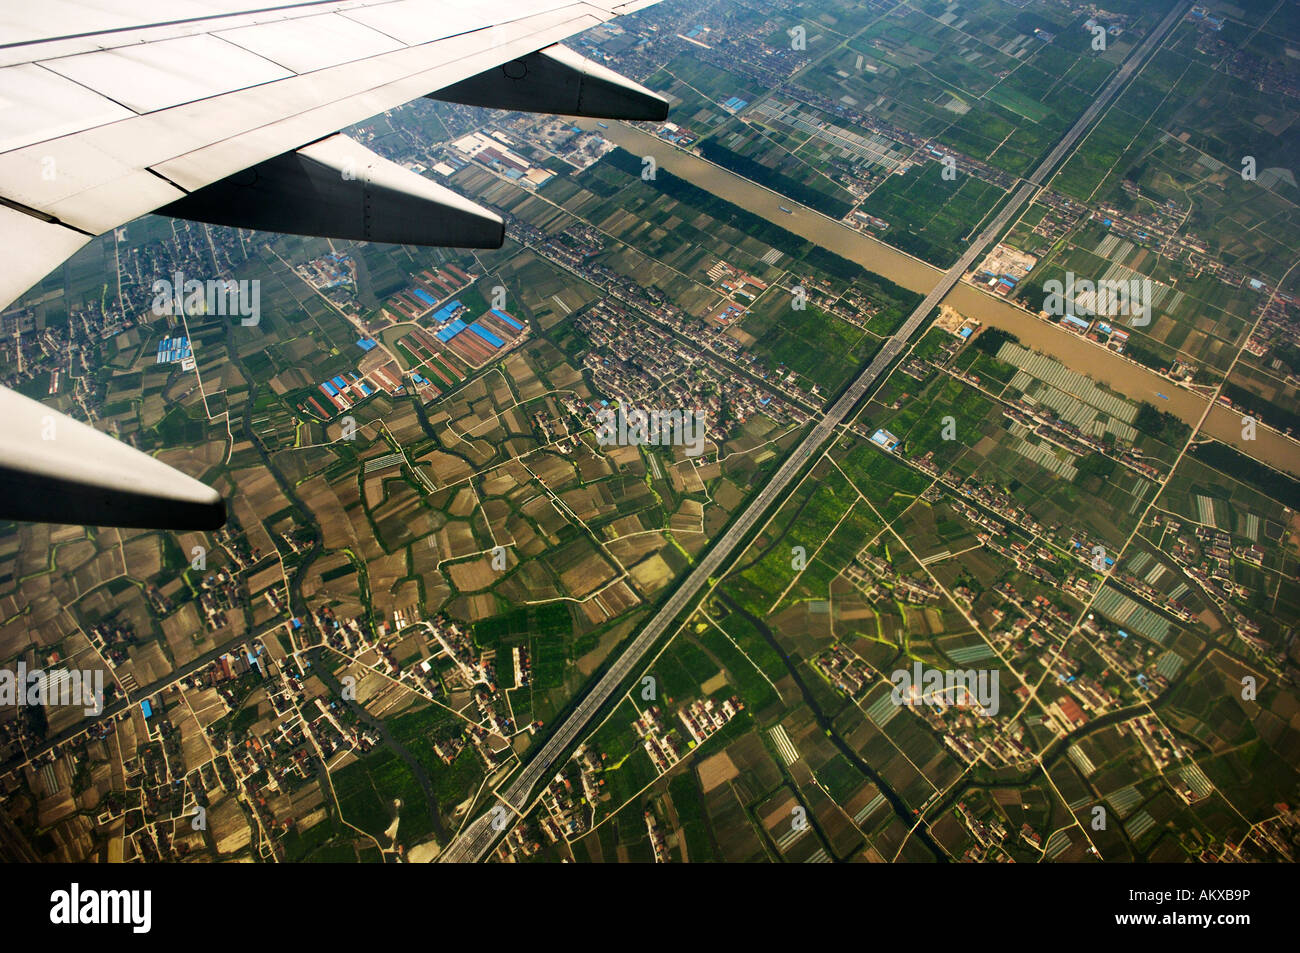 China, view from an airplane, near Shanghai, China - Stock Image